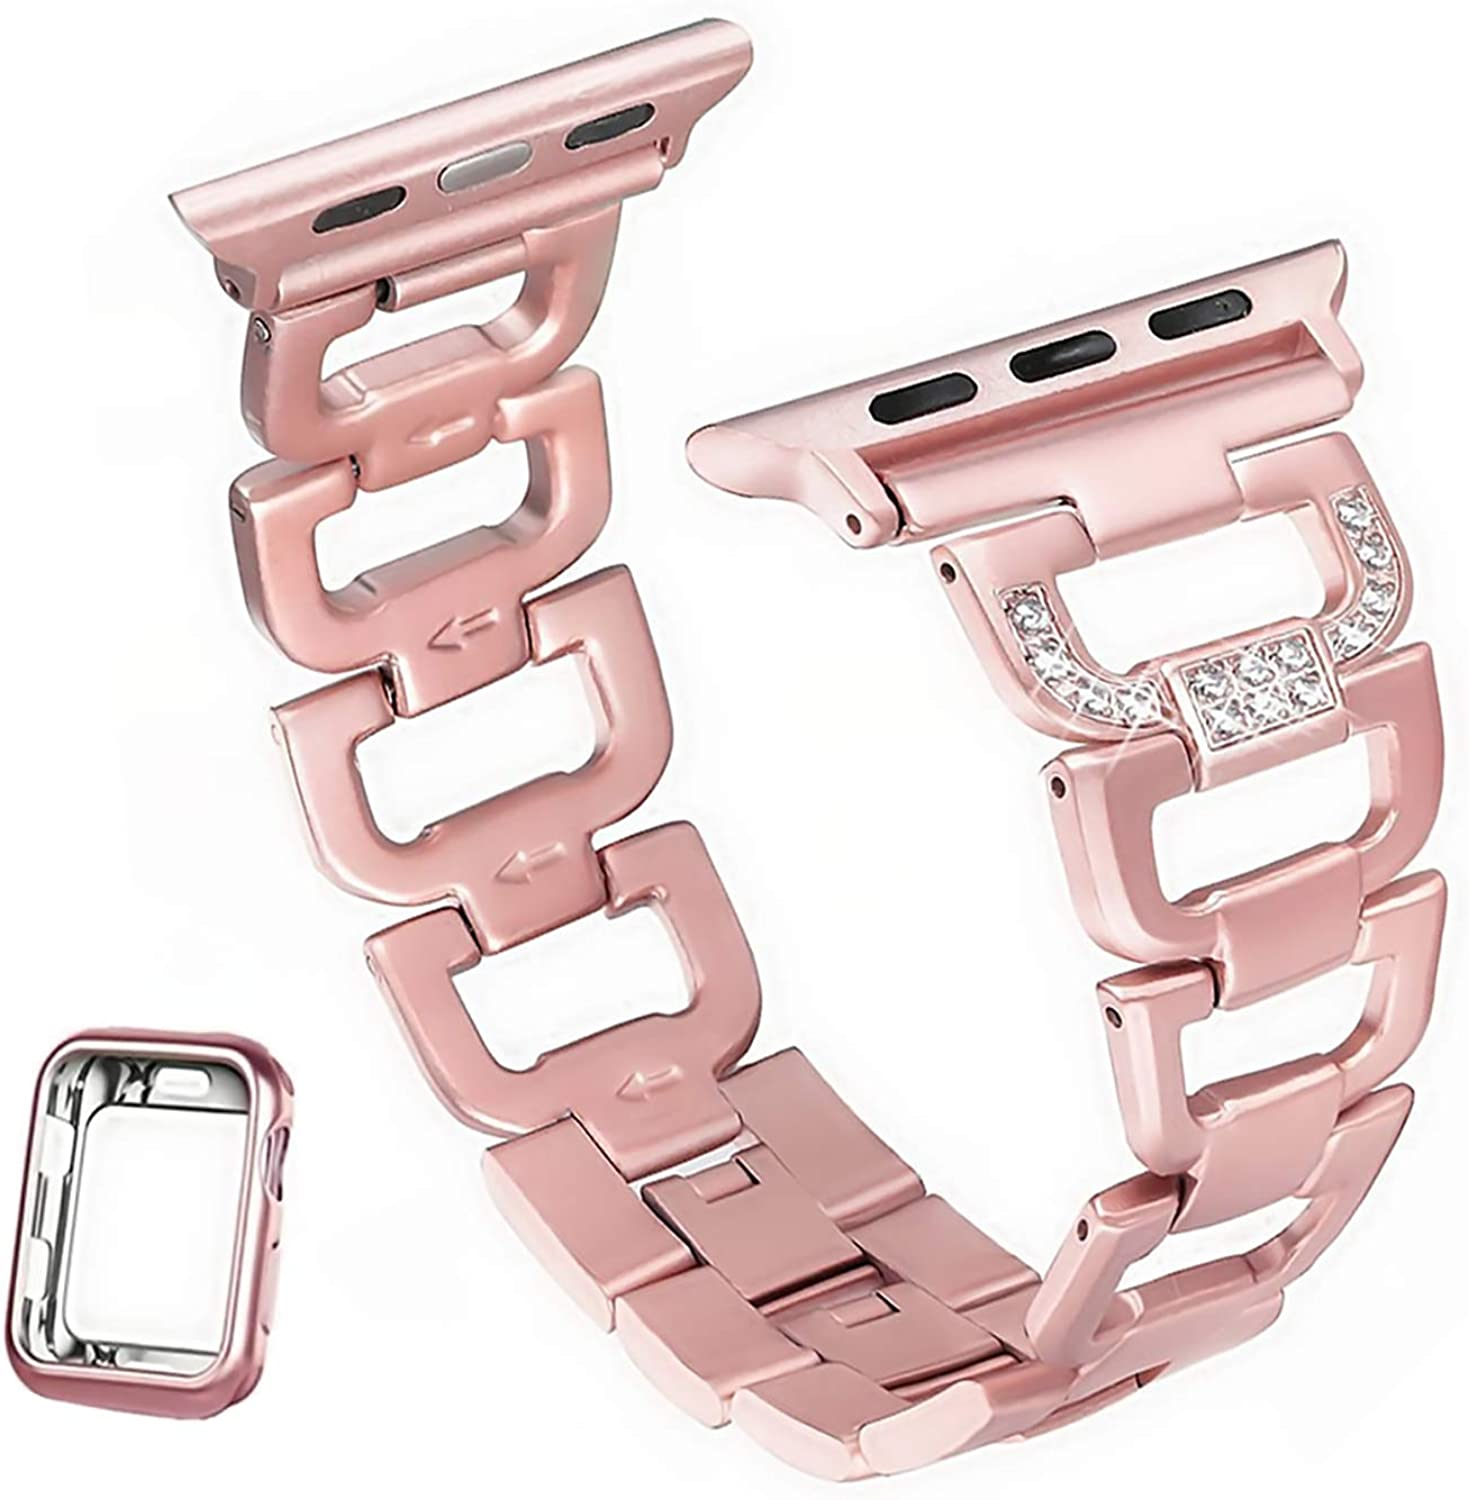 HenMerry Bling Band Compatible for Apple Watch 38mm 40mm Diamond D Style Crystal Rhinestone Strap iwatch Bands Series 6 5 4 3 2 1 Rose Gold Bling Bands